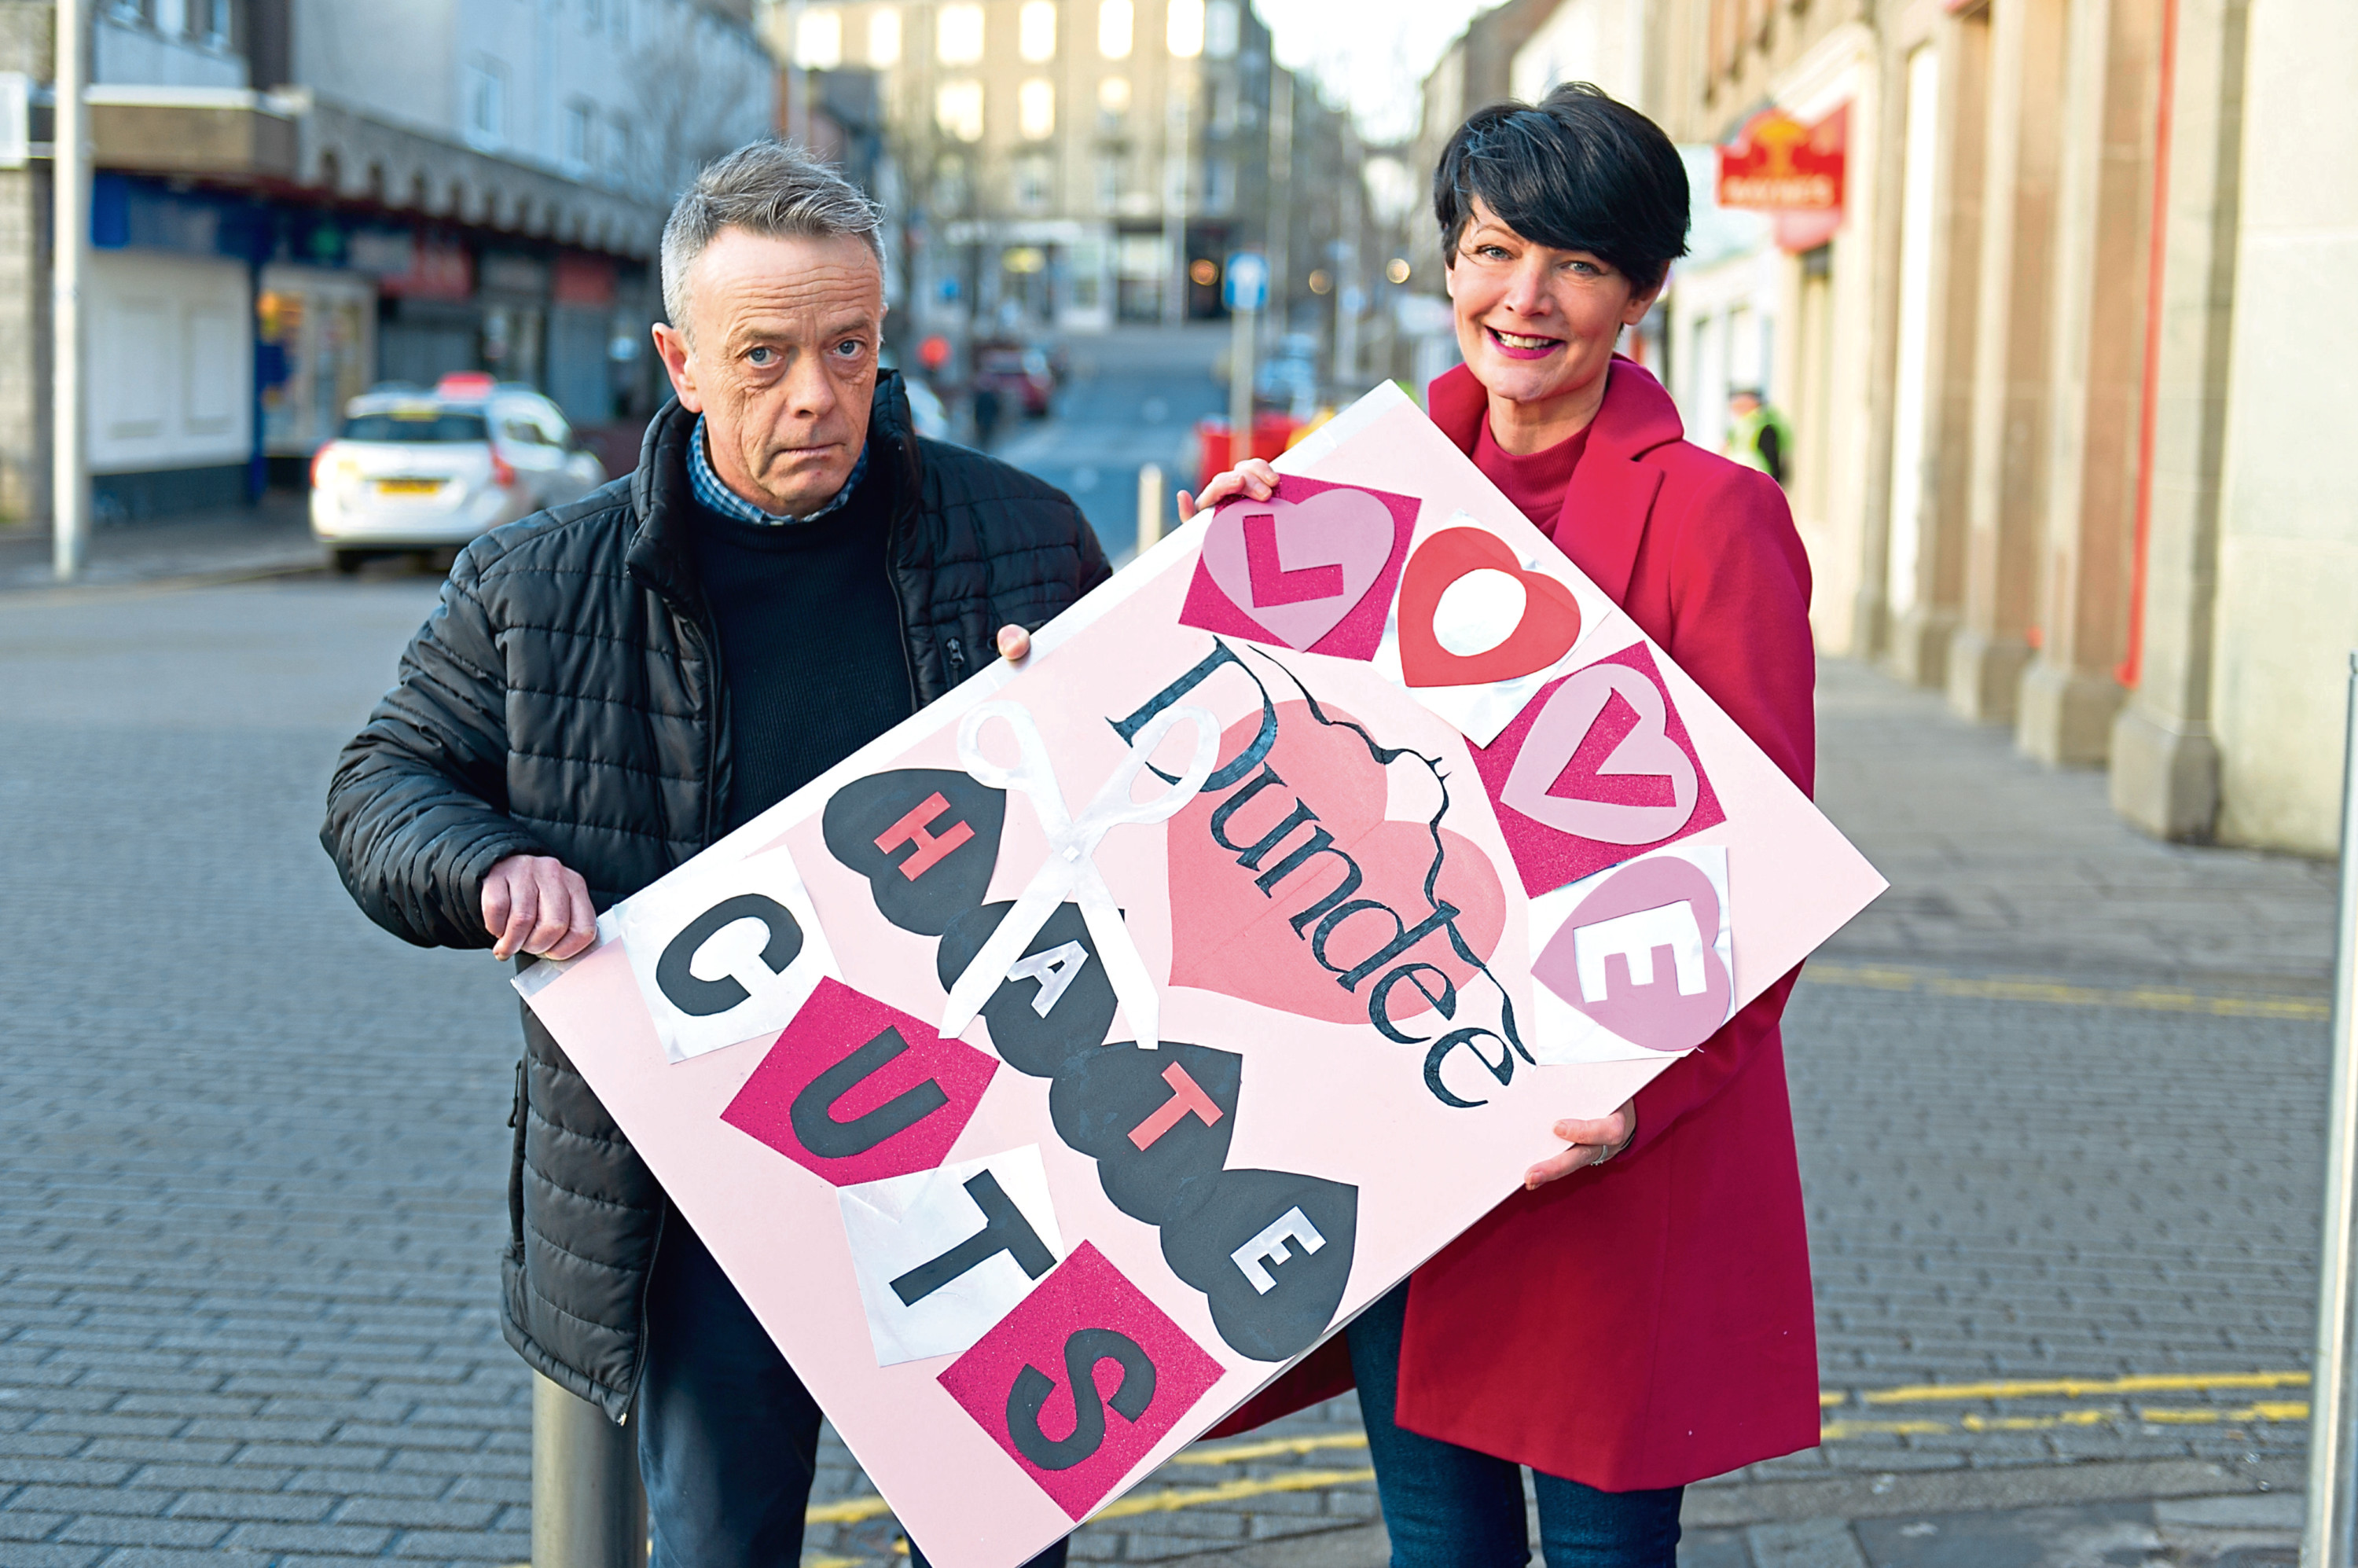 Rory Malone and Jayne Kelly with a Valentine's Card made by campaigners from Lochee that will be presented to John Alexander at the budget